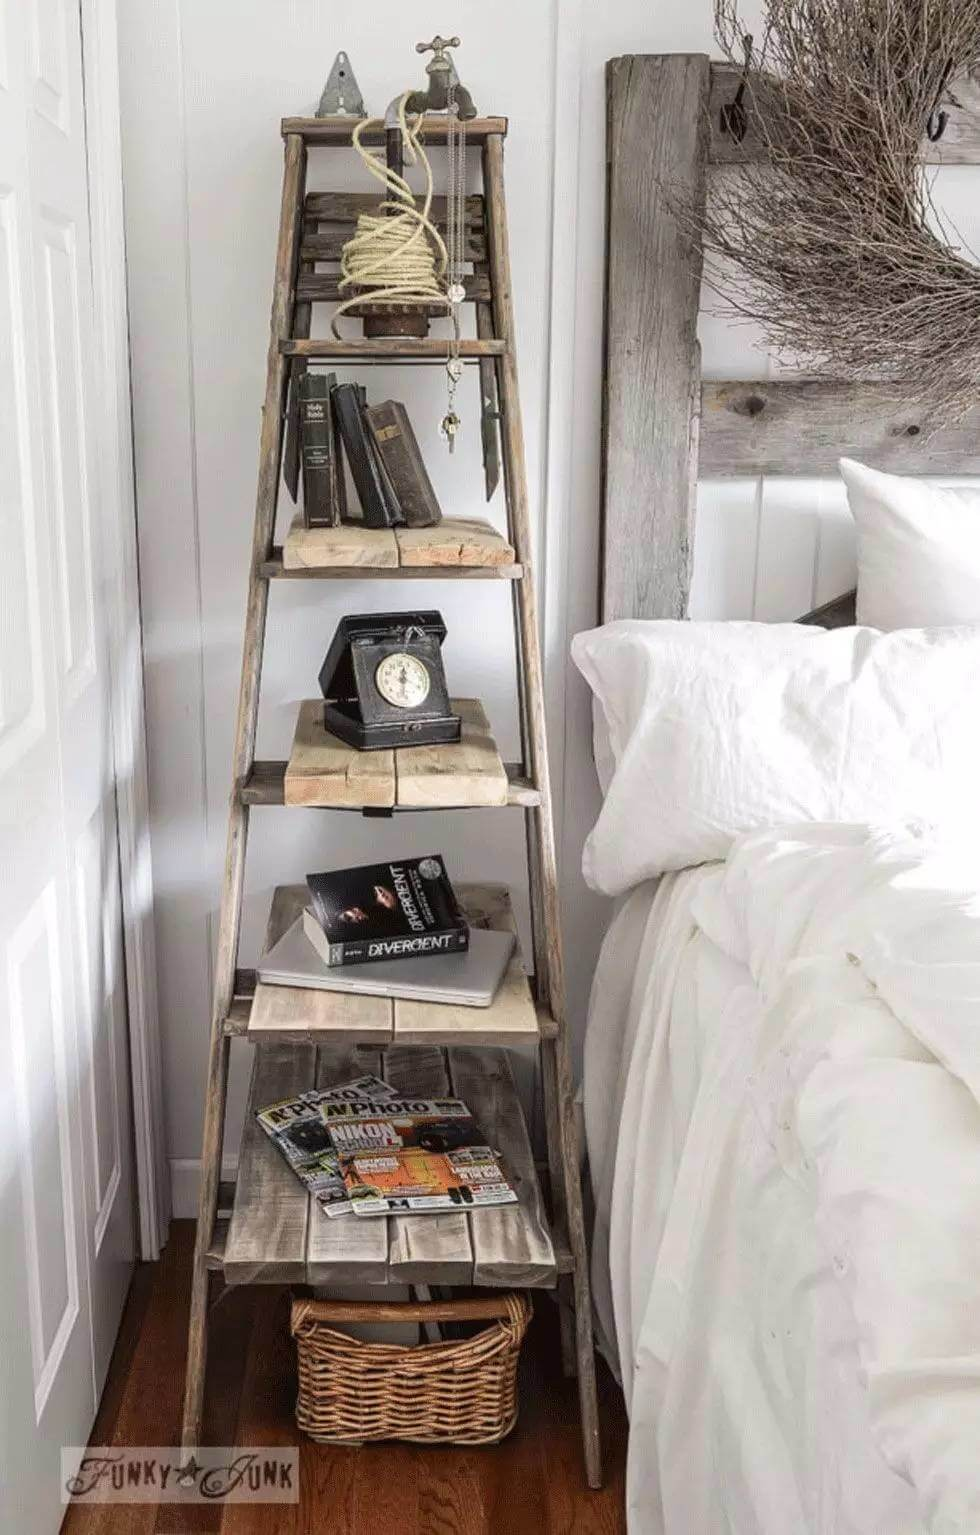 Captivating 17. Upcycled Orchard Ladder Turned Nightstand